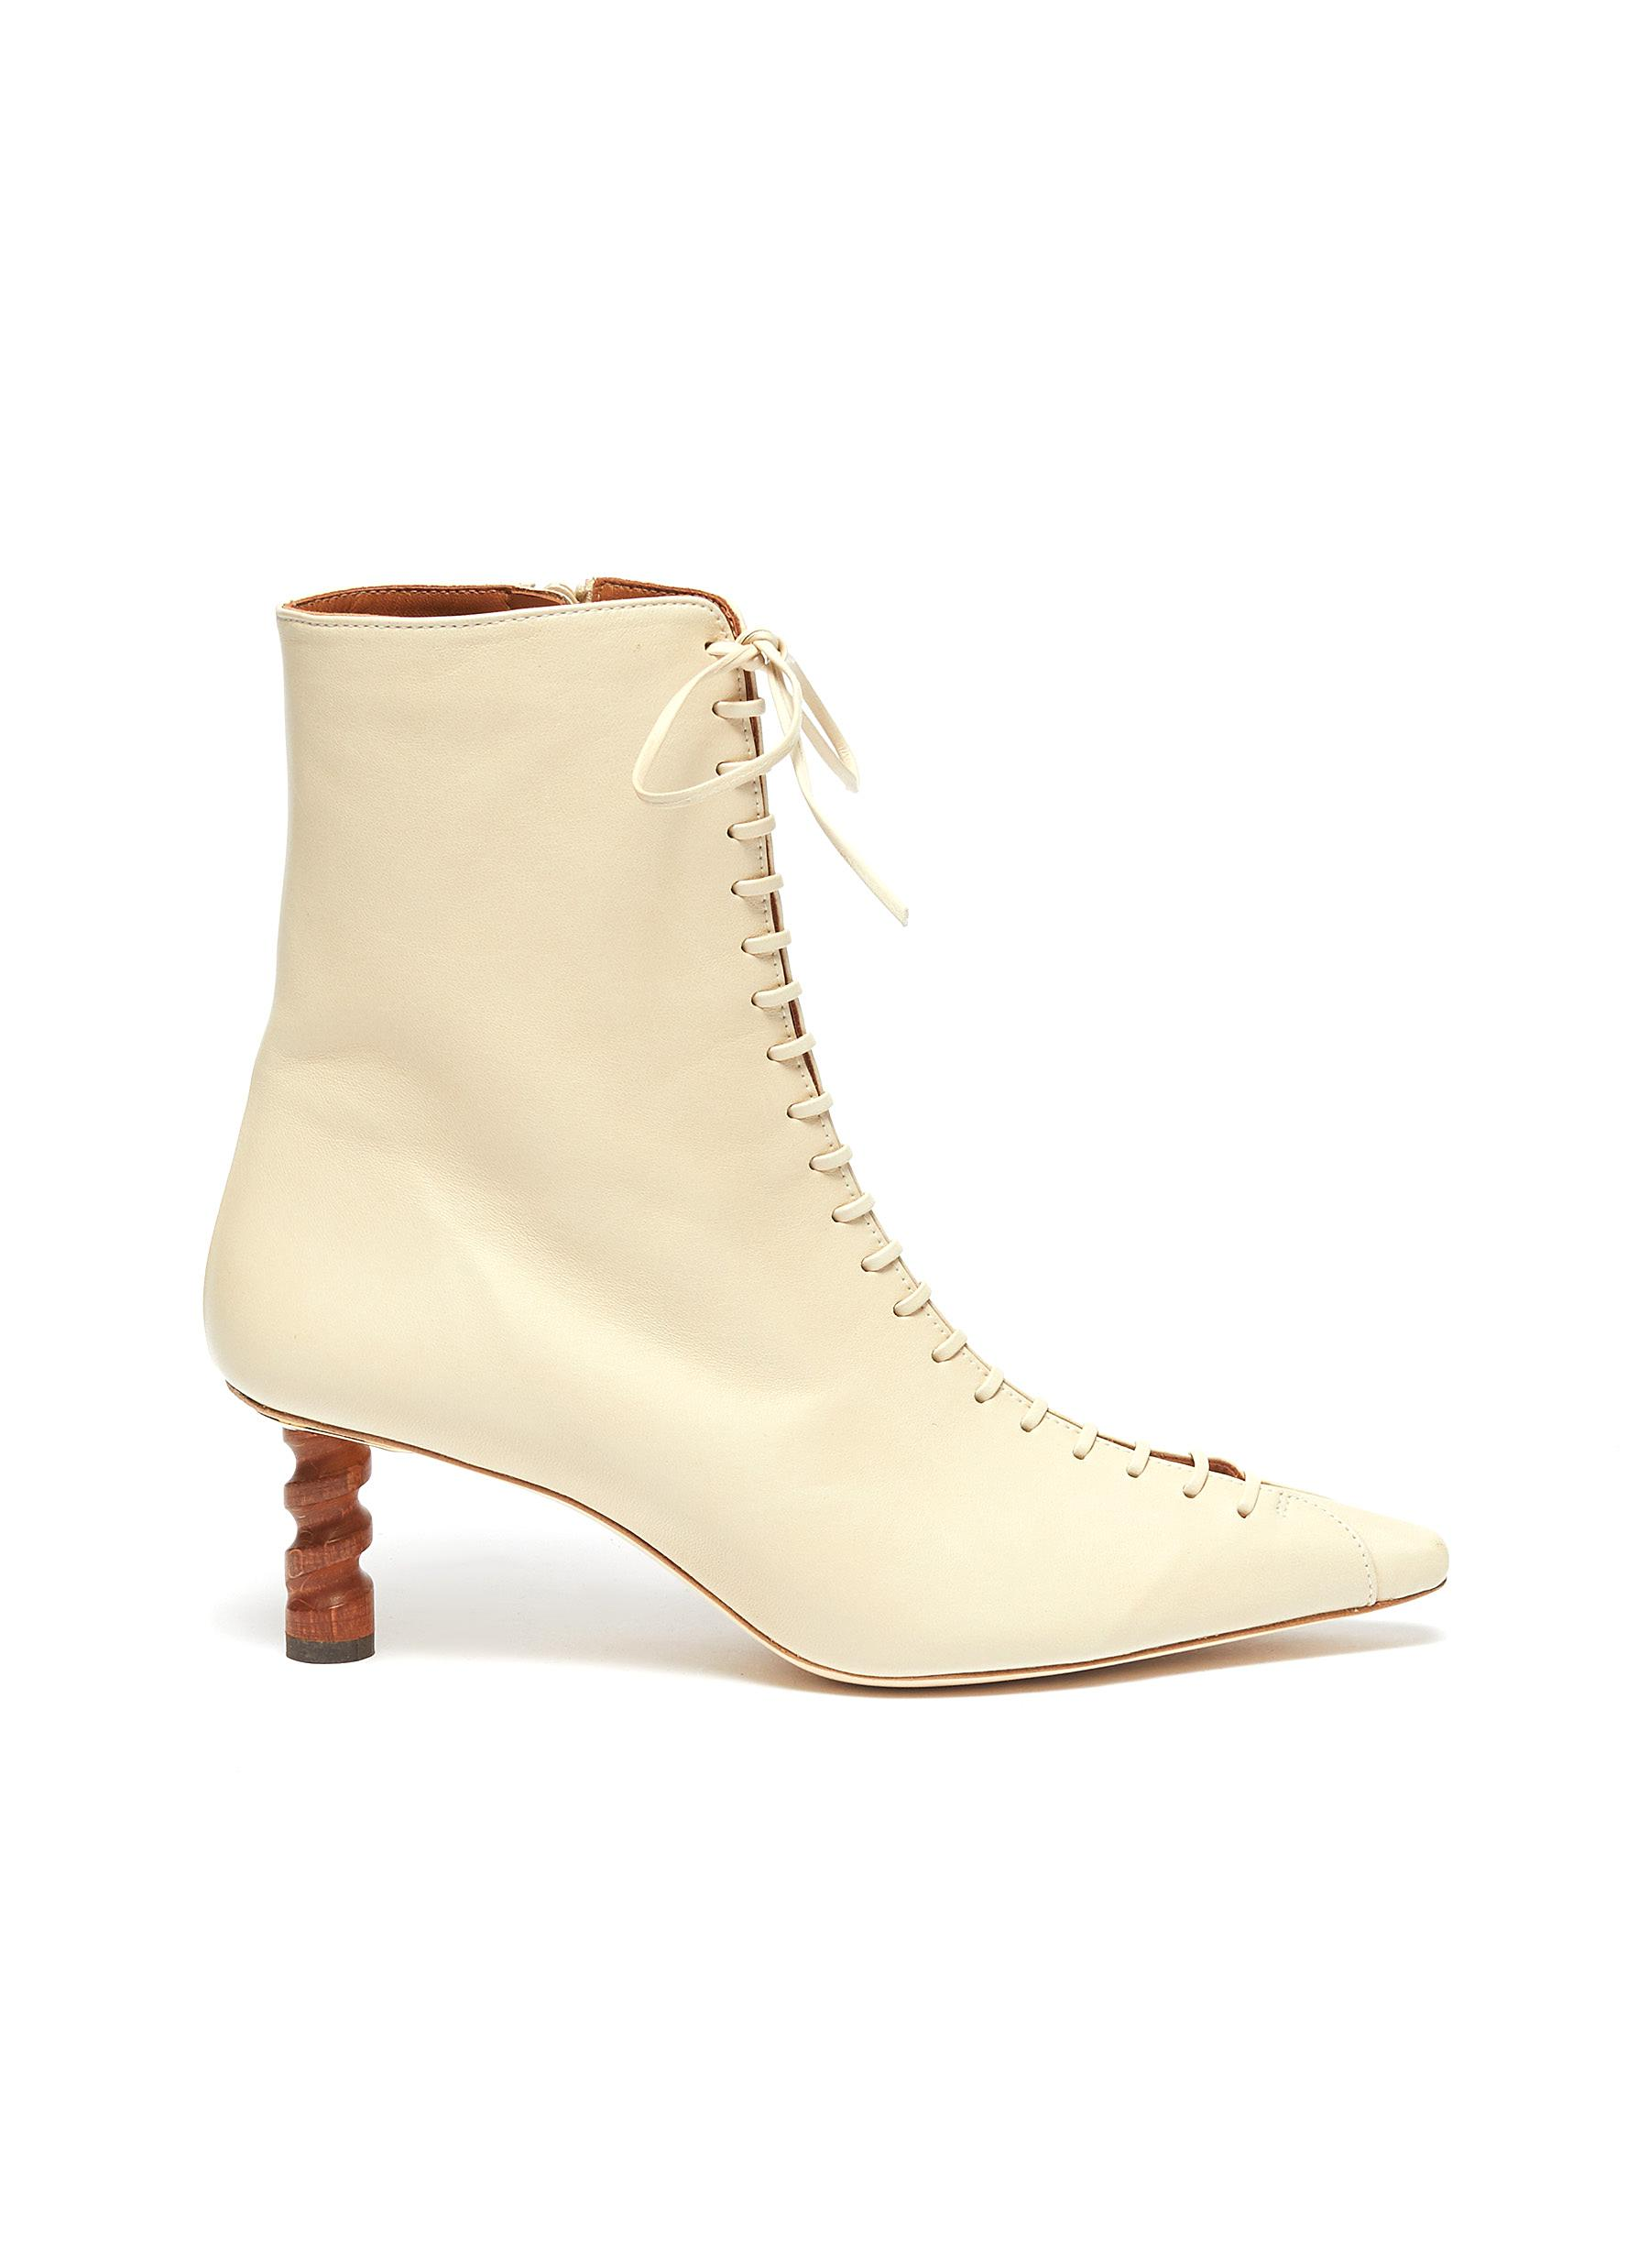 Simone wooden heel lace-up leather ankle boots by Rejina Pyo